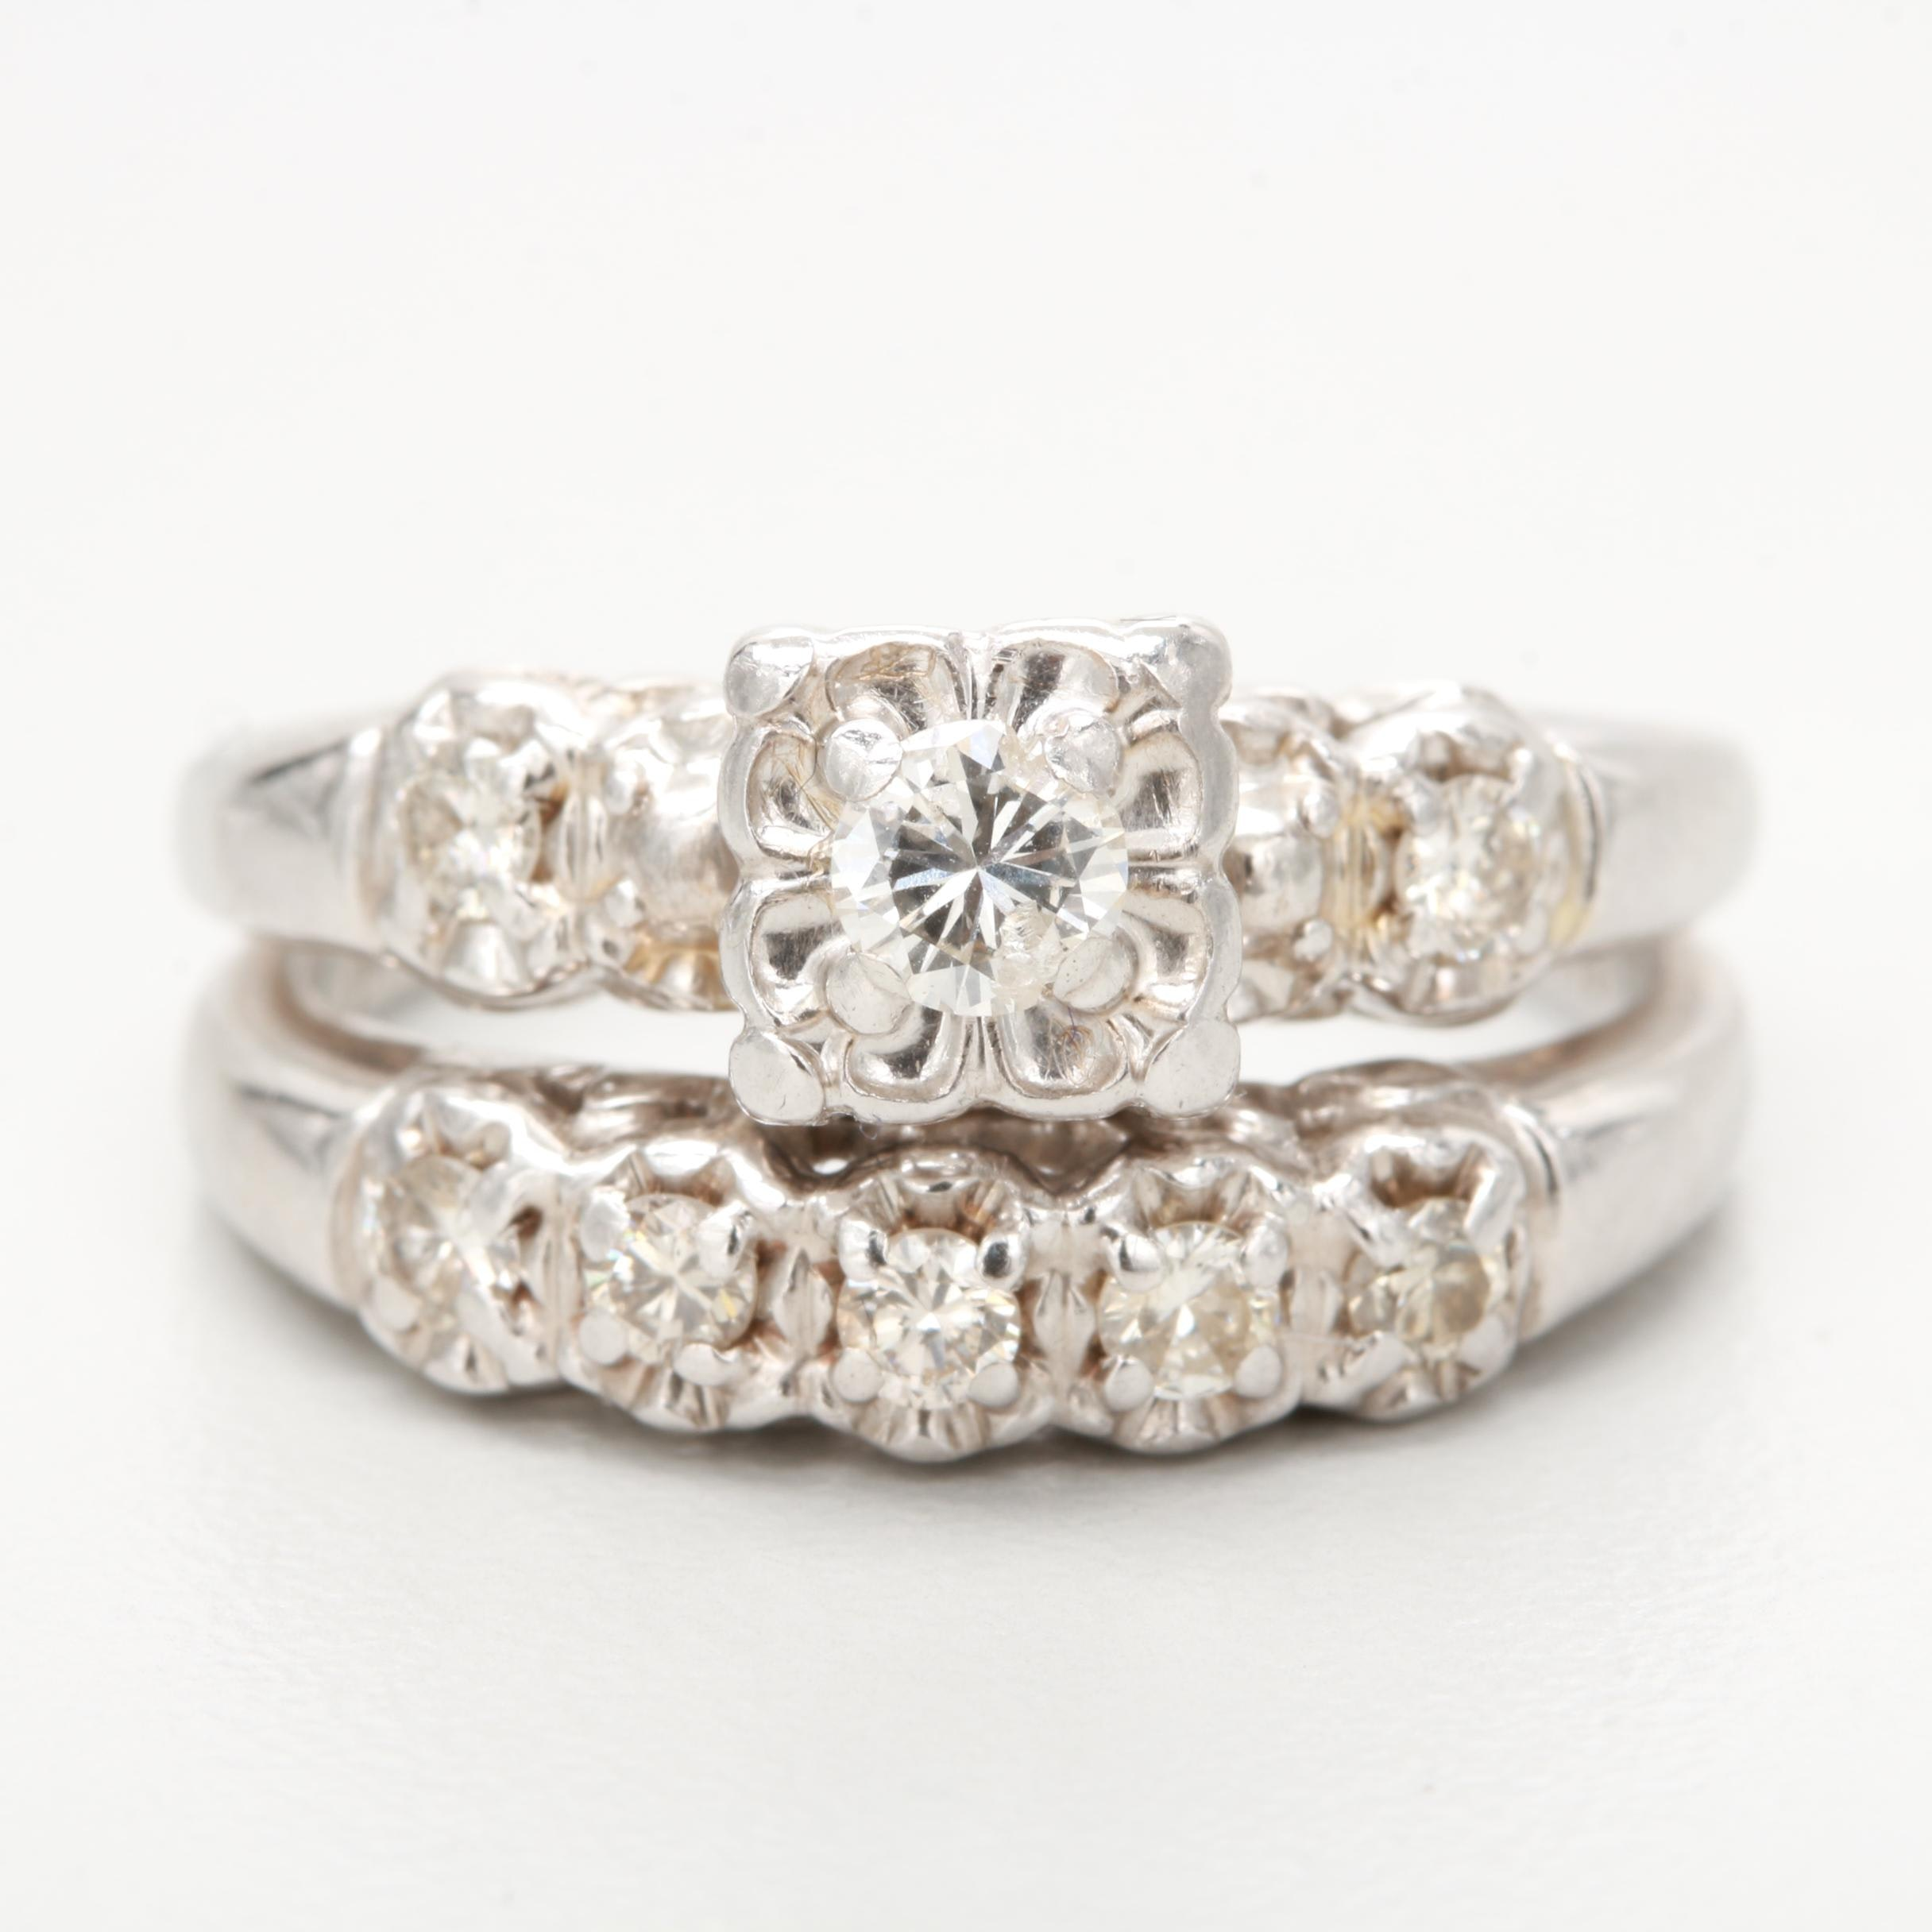 Circa 1940s 14K White Gold Diamond Bridal Set